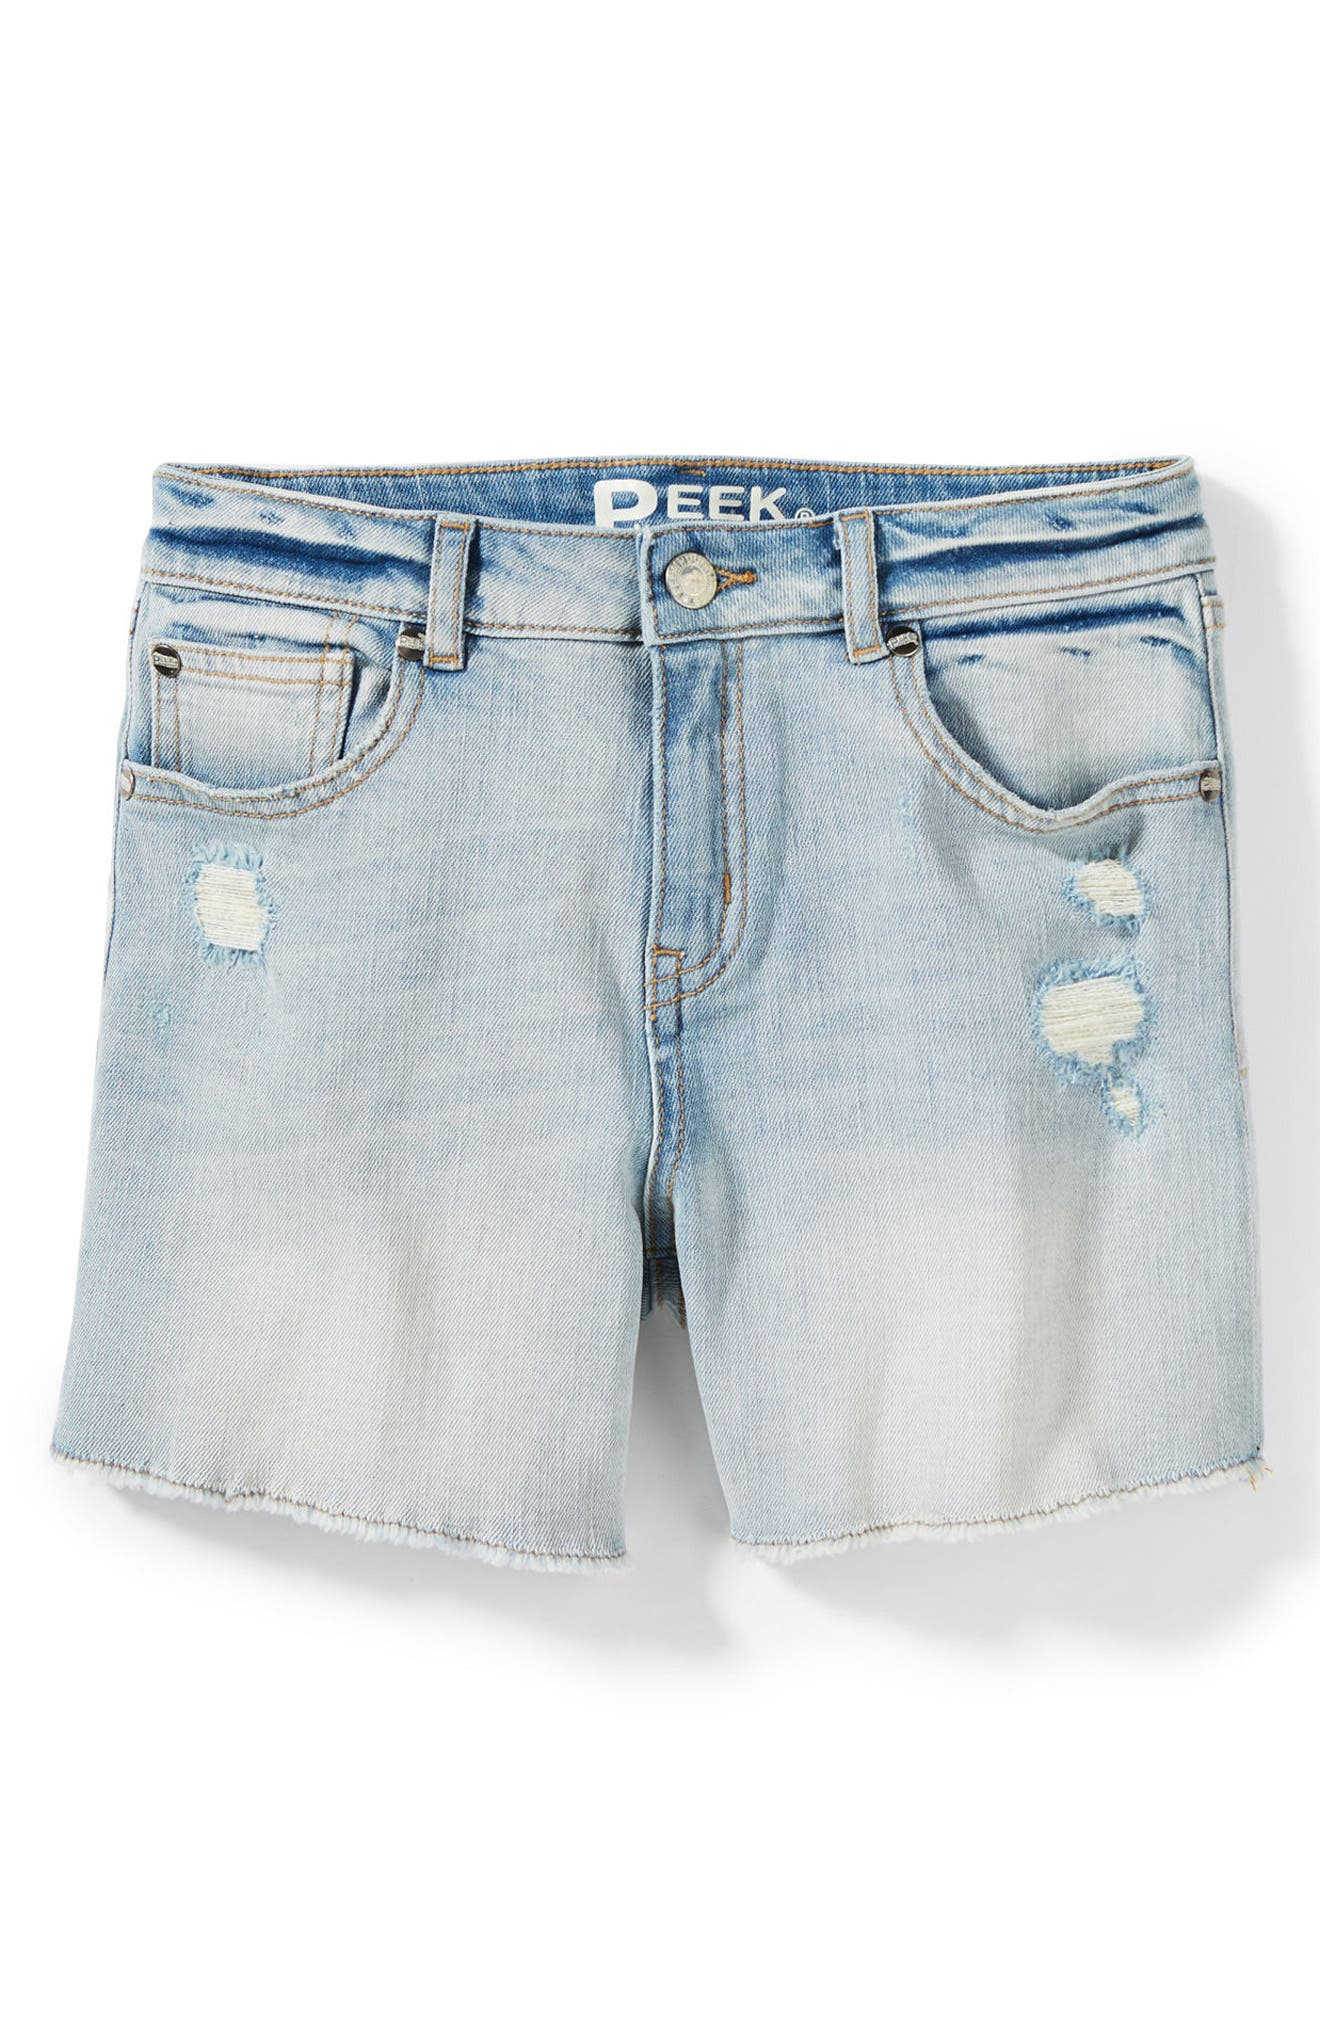 Griffin Rip & Repair Cutoff Denim Shorts,                         Main,                         color,